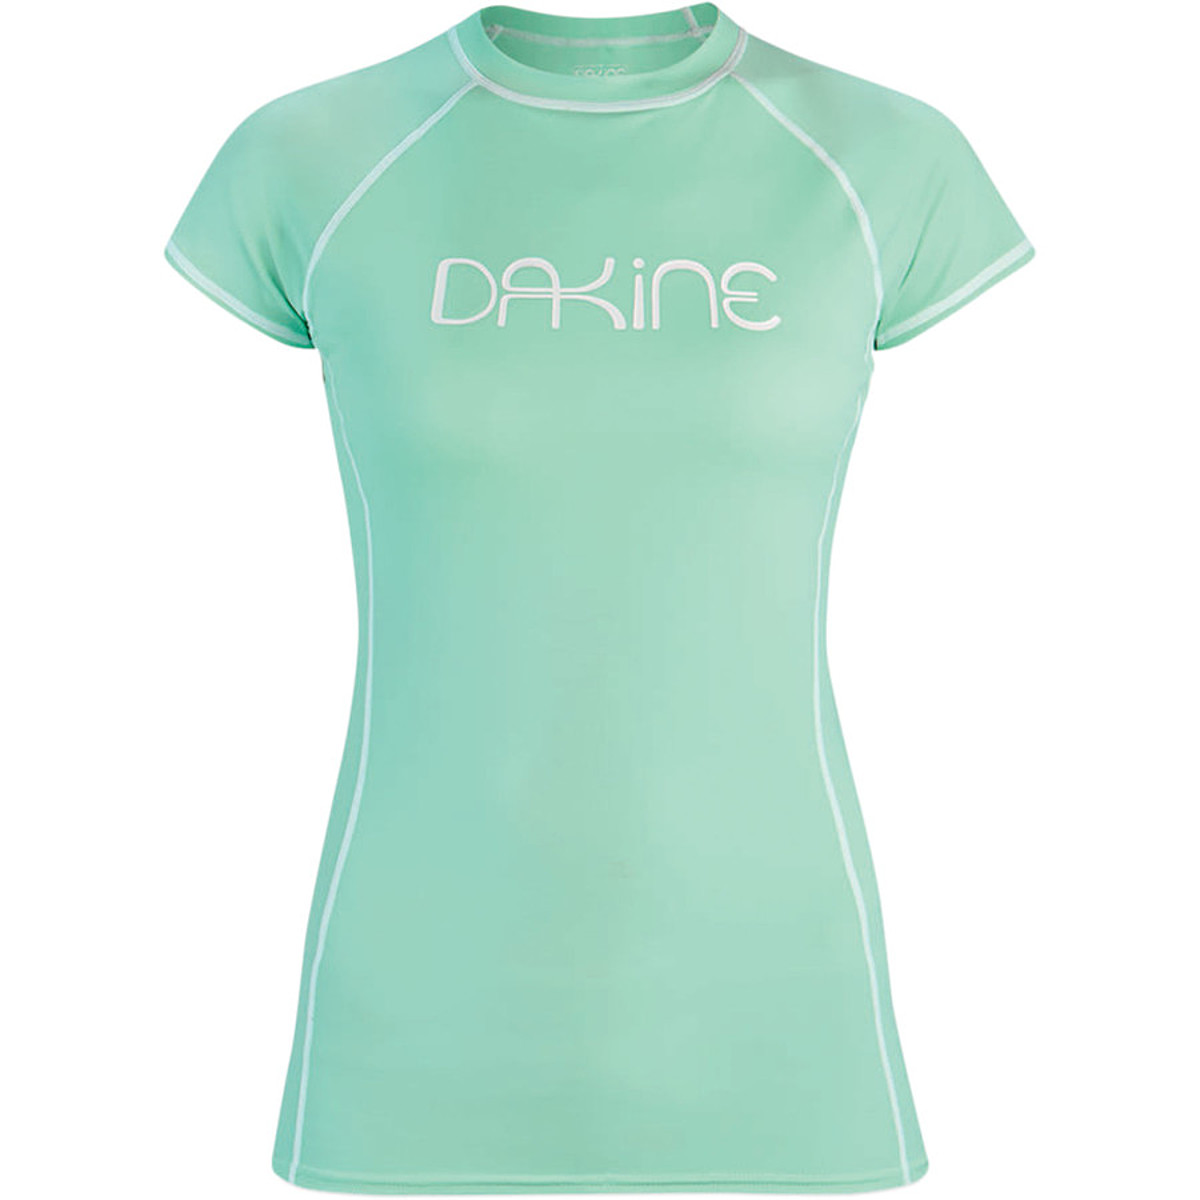 DaKine Tech Short Sleeve Rashguard